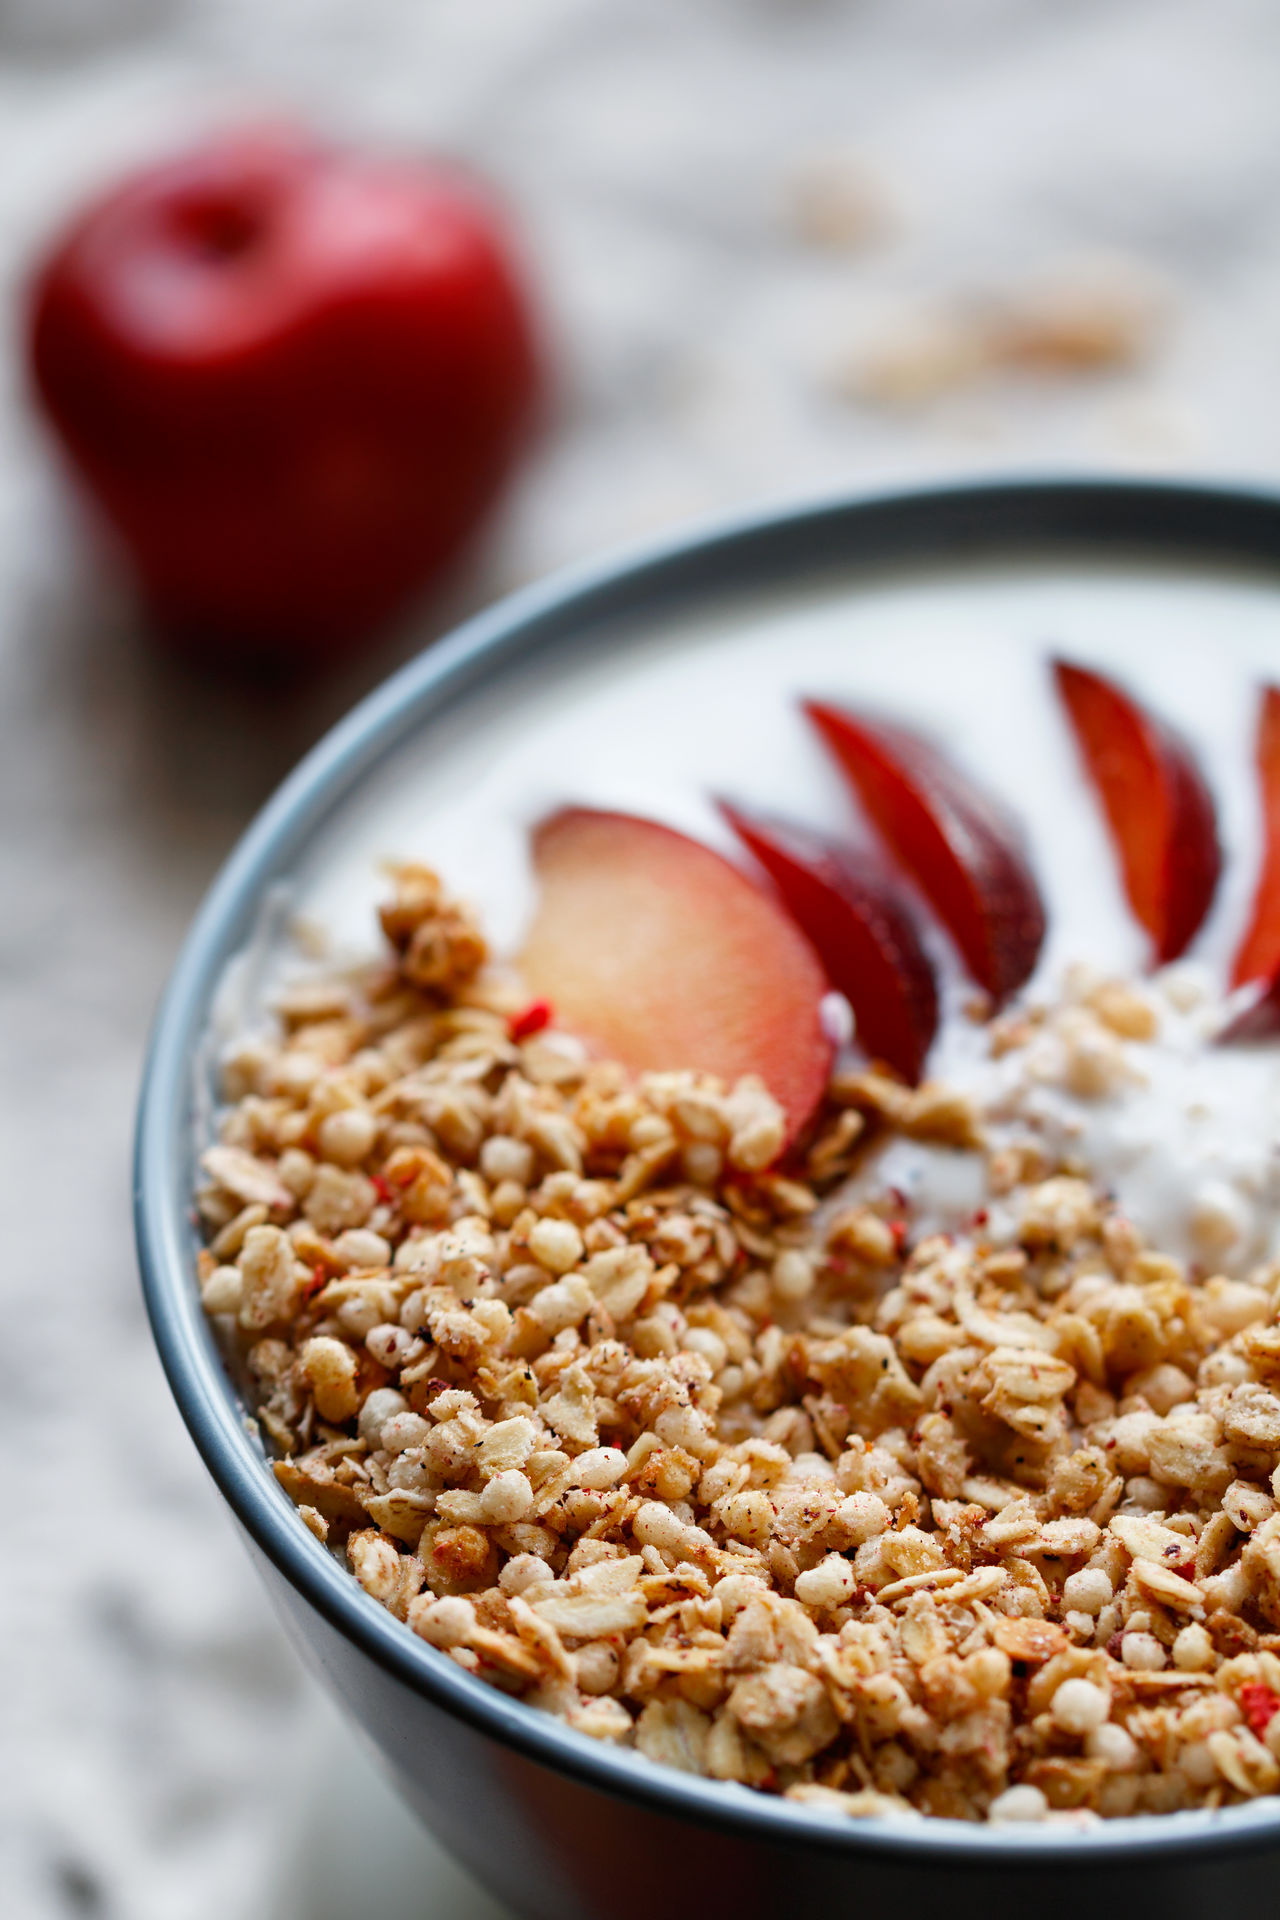 Breakfast Cereal Close-up Food Food And Drink Healthy Eating Healthy Food Milk Morning Plum Ready-to-eat Selective Focus Table